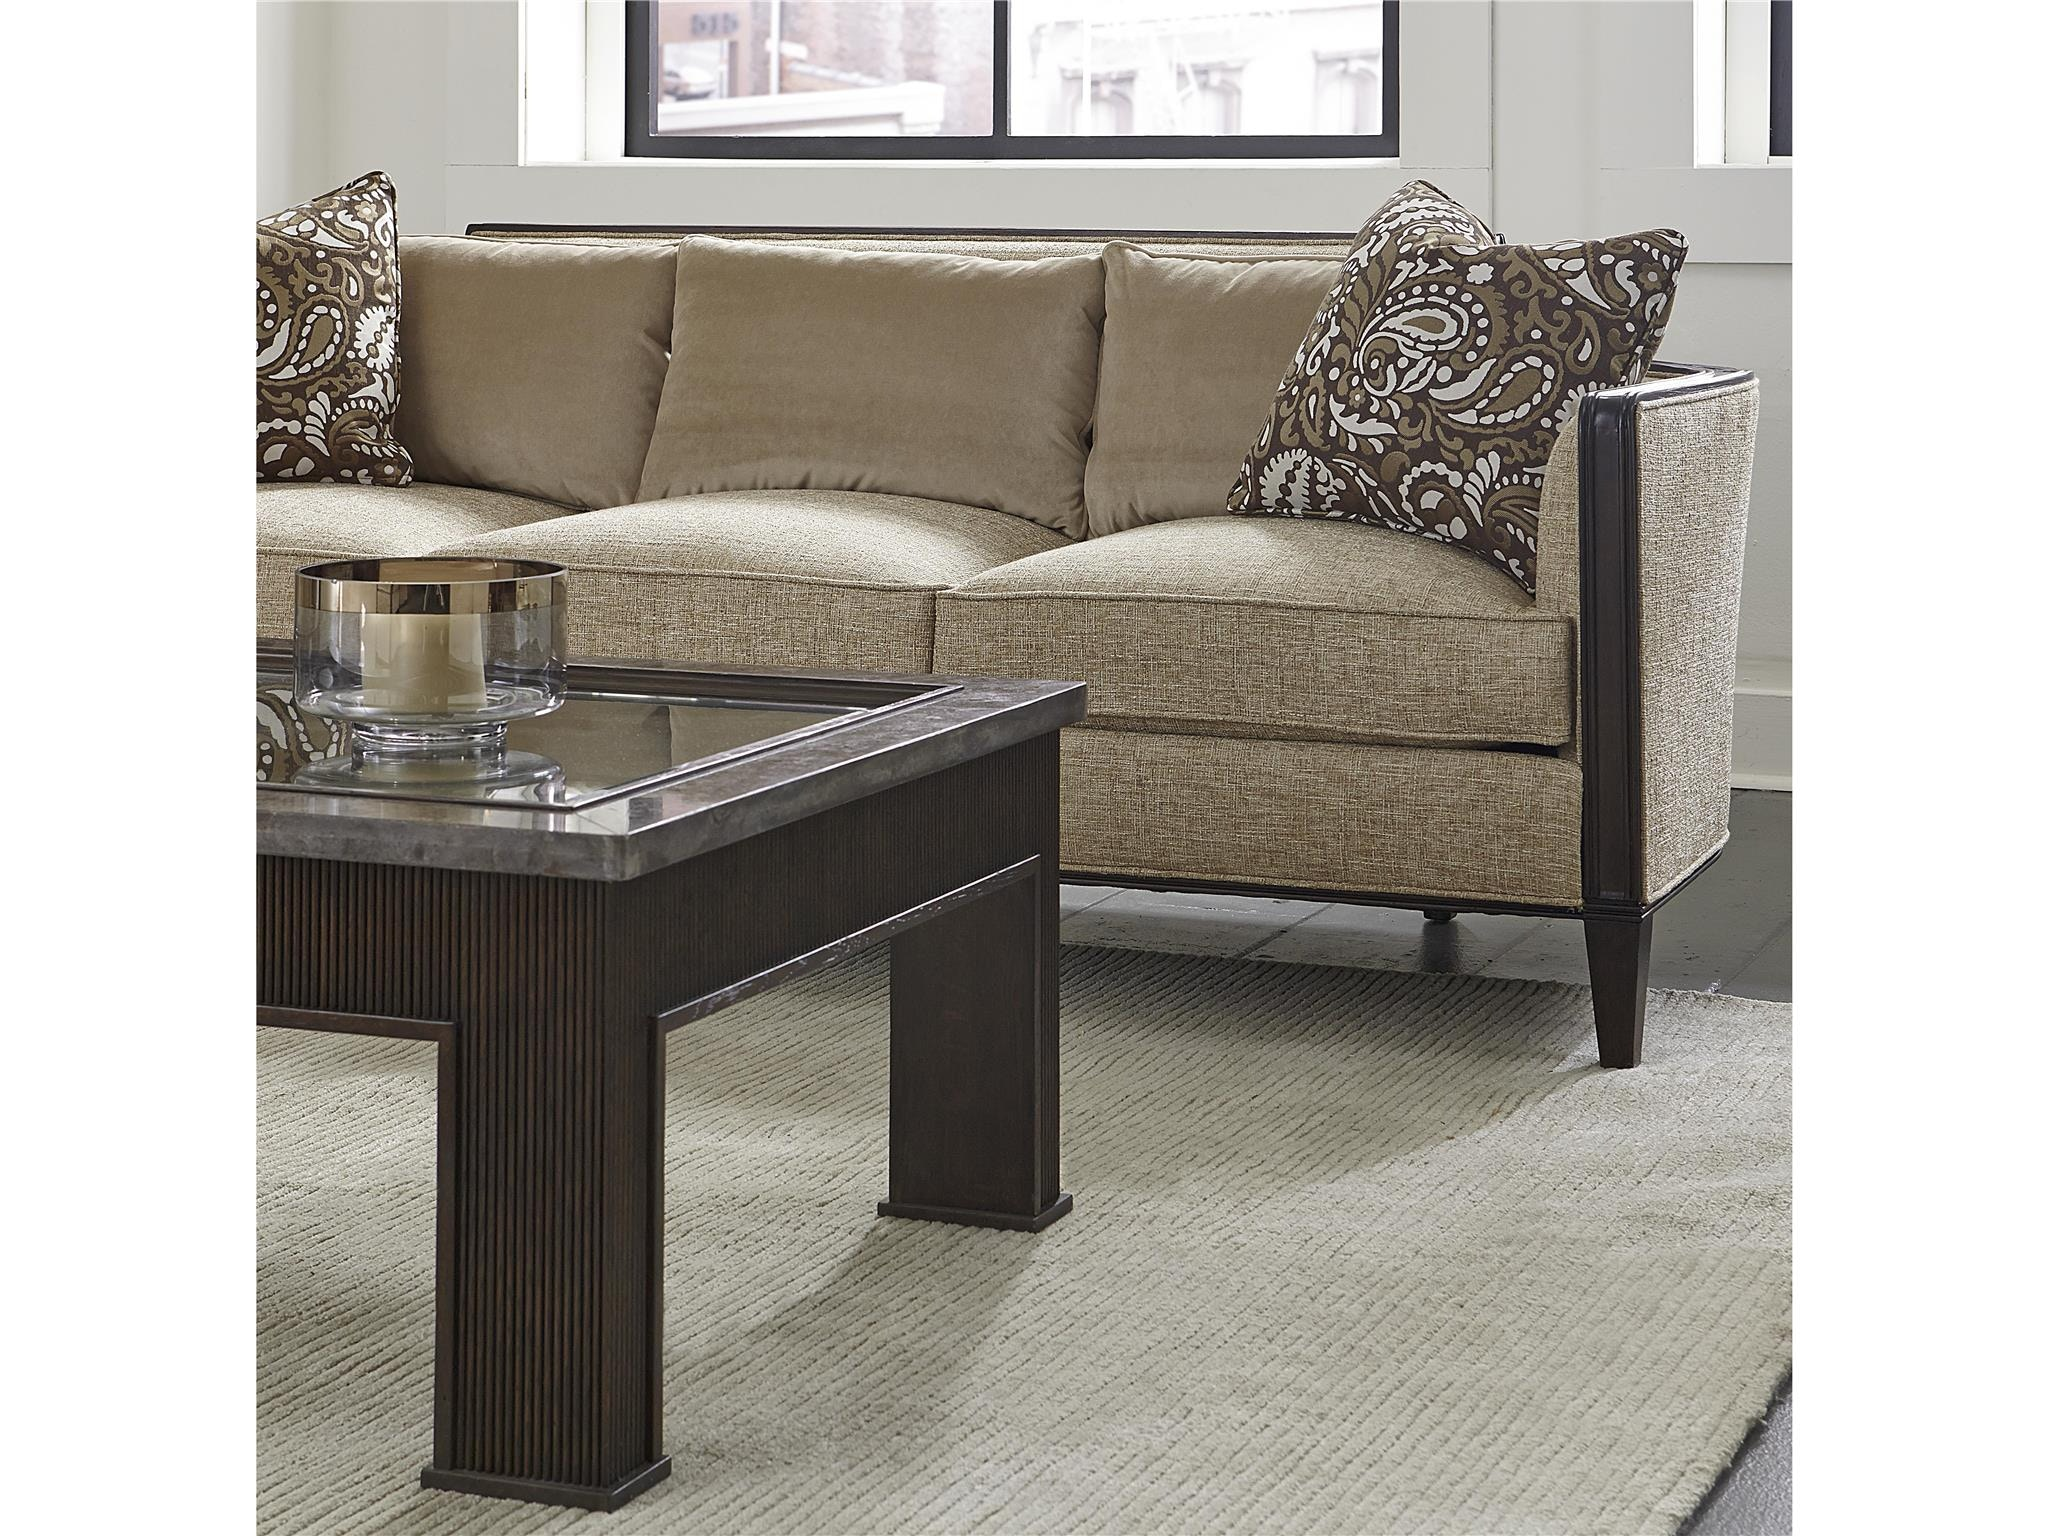 Marketplace F Blake Sofa MR552201 From Walter E. Smithe Furniture + Design